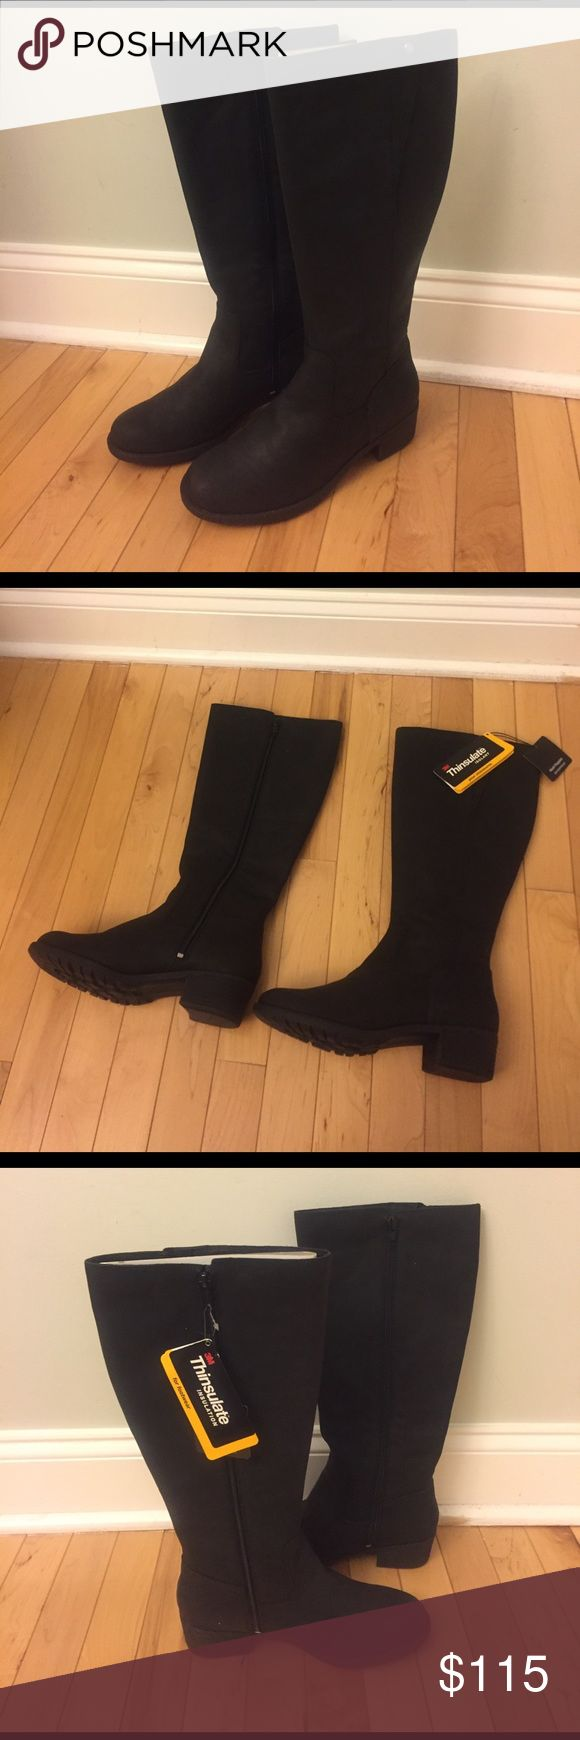 Additional pictures of Hush Puppies Boots Additional pictures of Hush Puppies Boots Hush Puppies Shoes Winter & Rain Boots